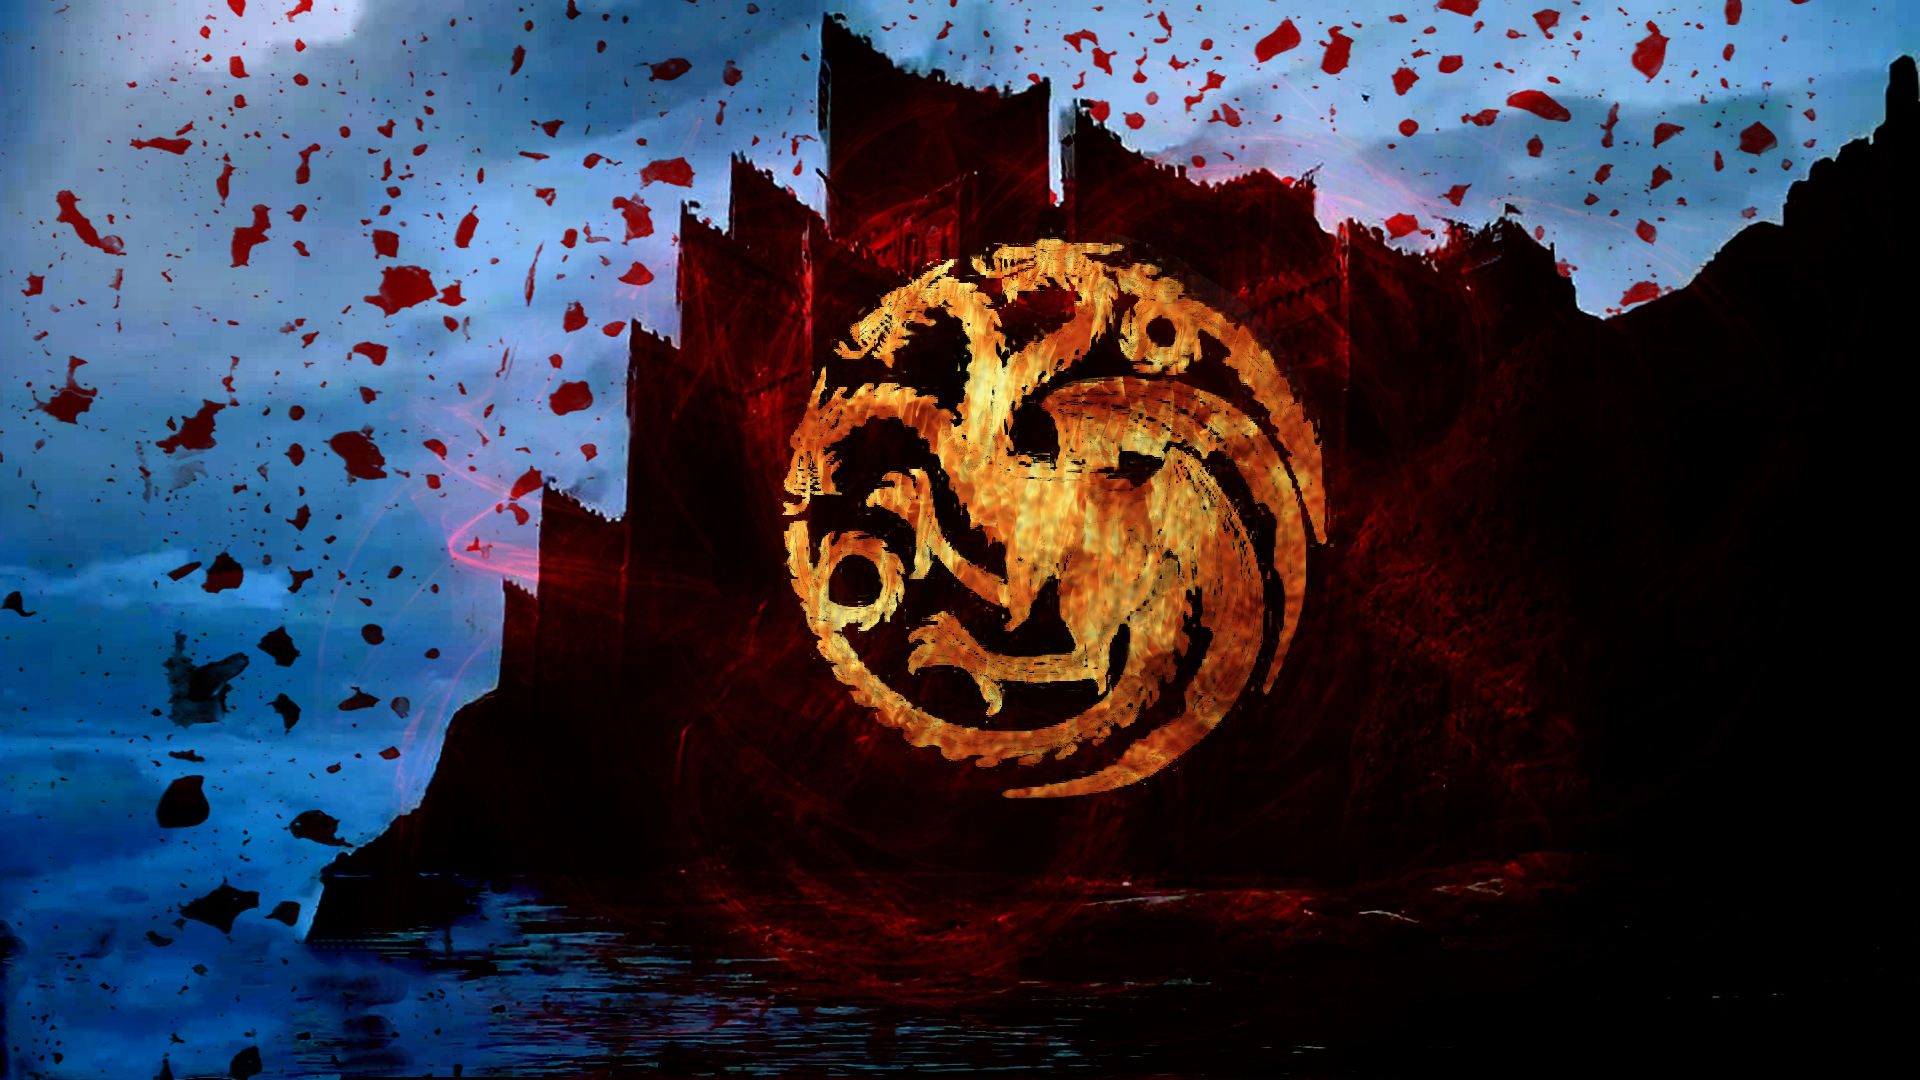 Game of thrones house wallpapers wallpapersafari for House of wallpaper